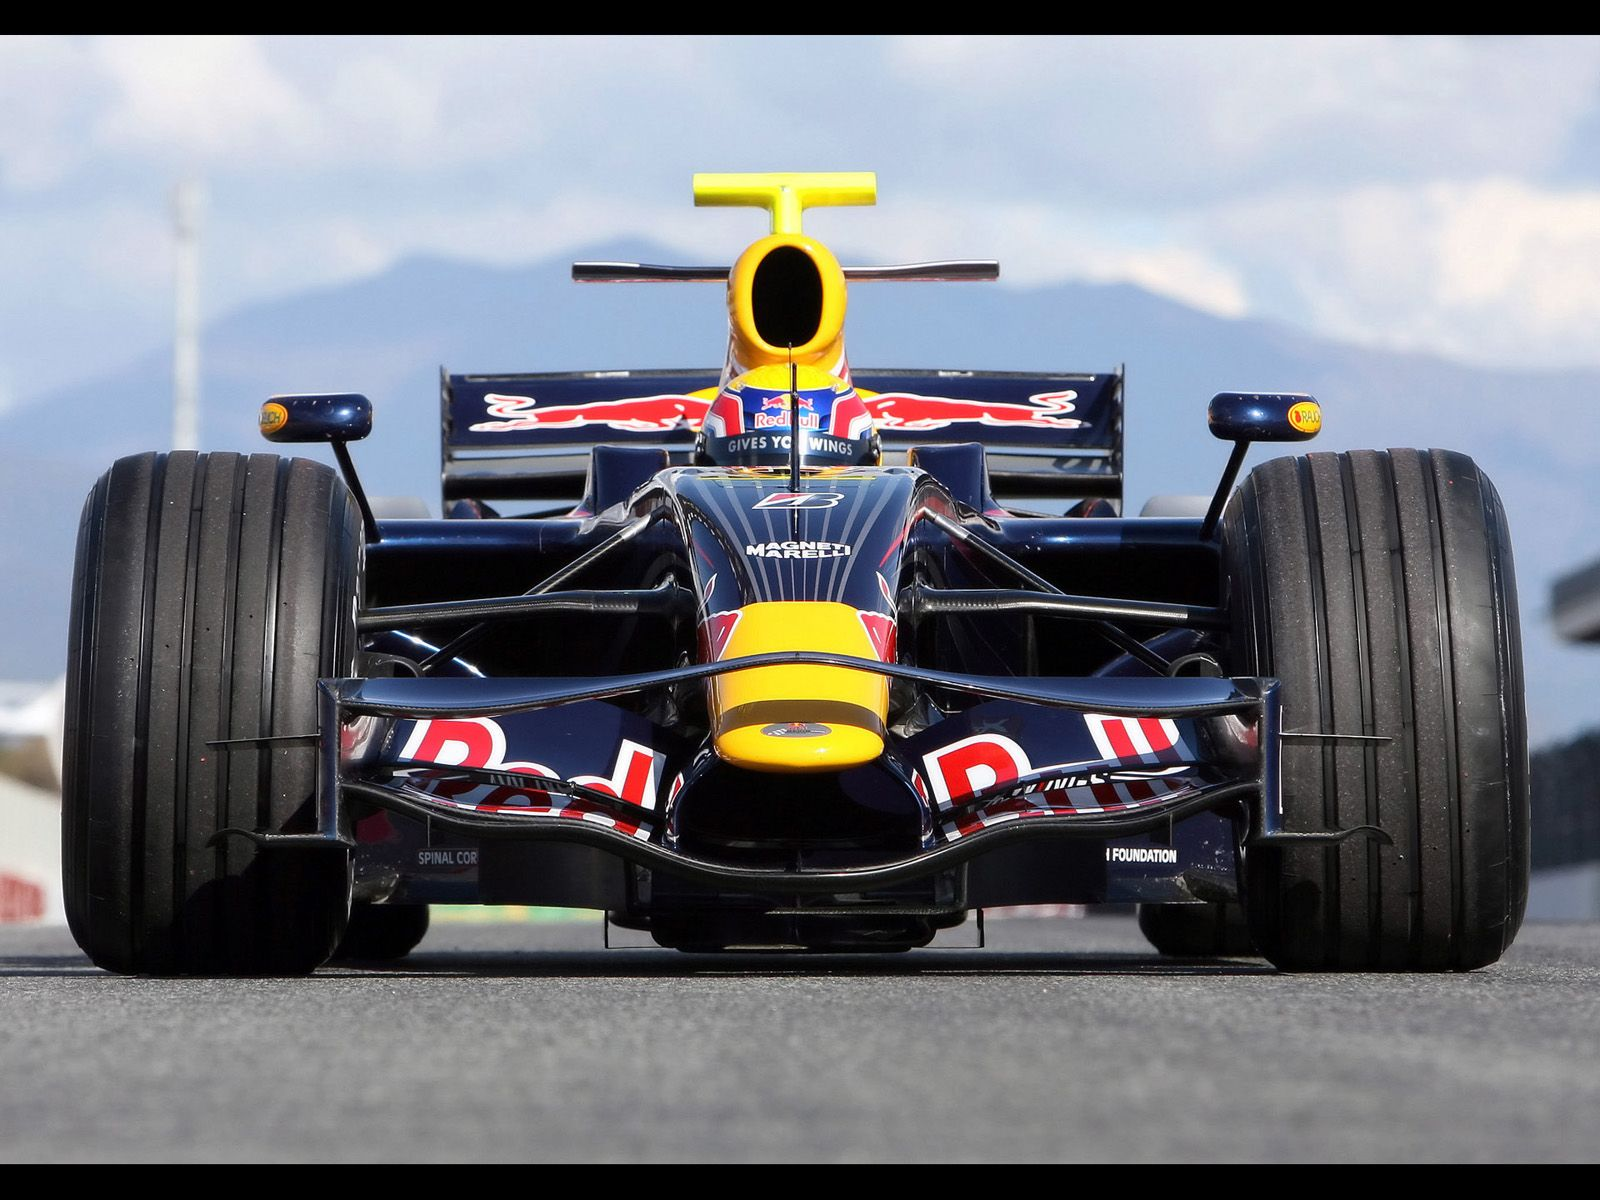 Red Bull Formula One | F1 Images | Pinterest | Red bull, F1 and Cars